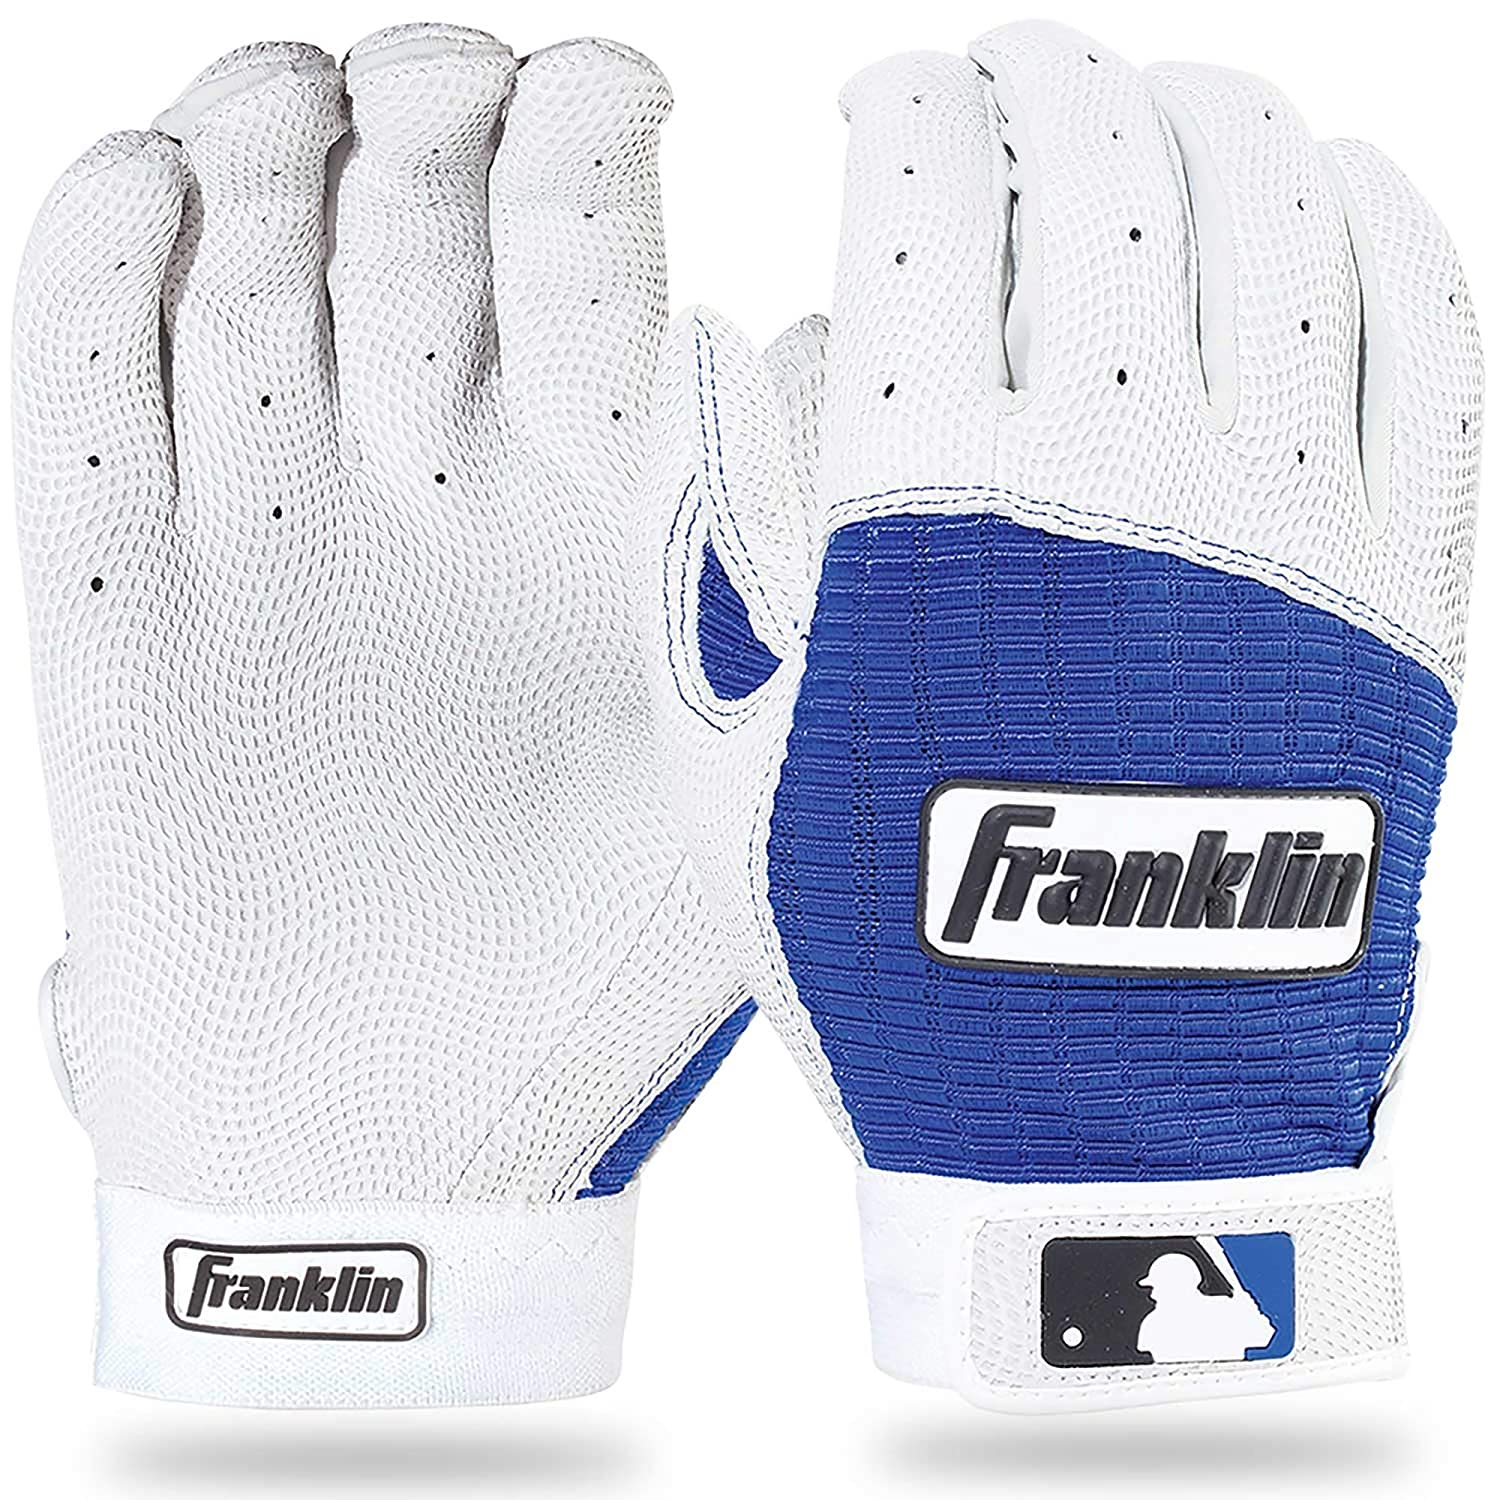 Franklin Sports MLB Pro Classic Baseball Batting Gloves Adult and Youth Sizes Premium Pro Grade Quality Leather Exceptional Breathability